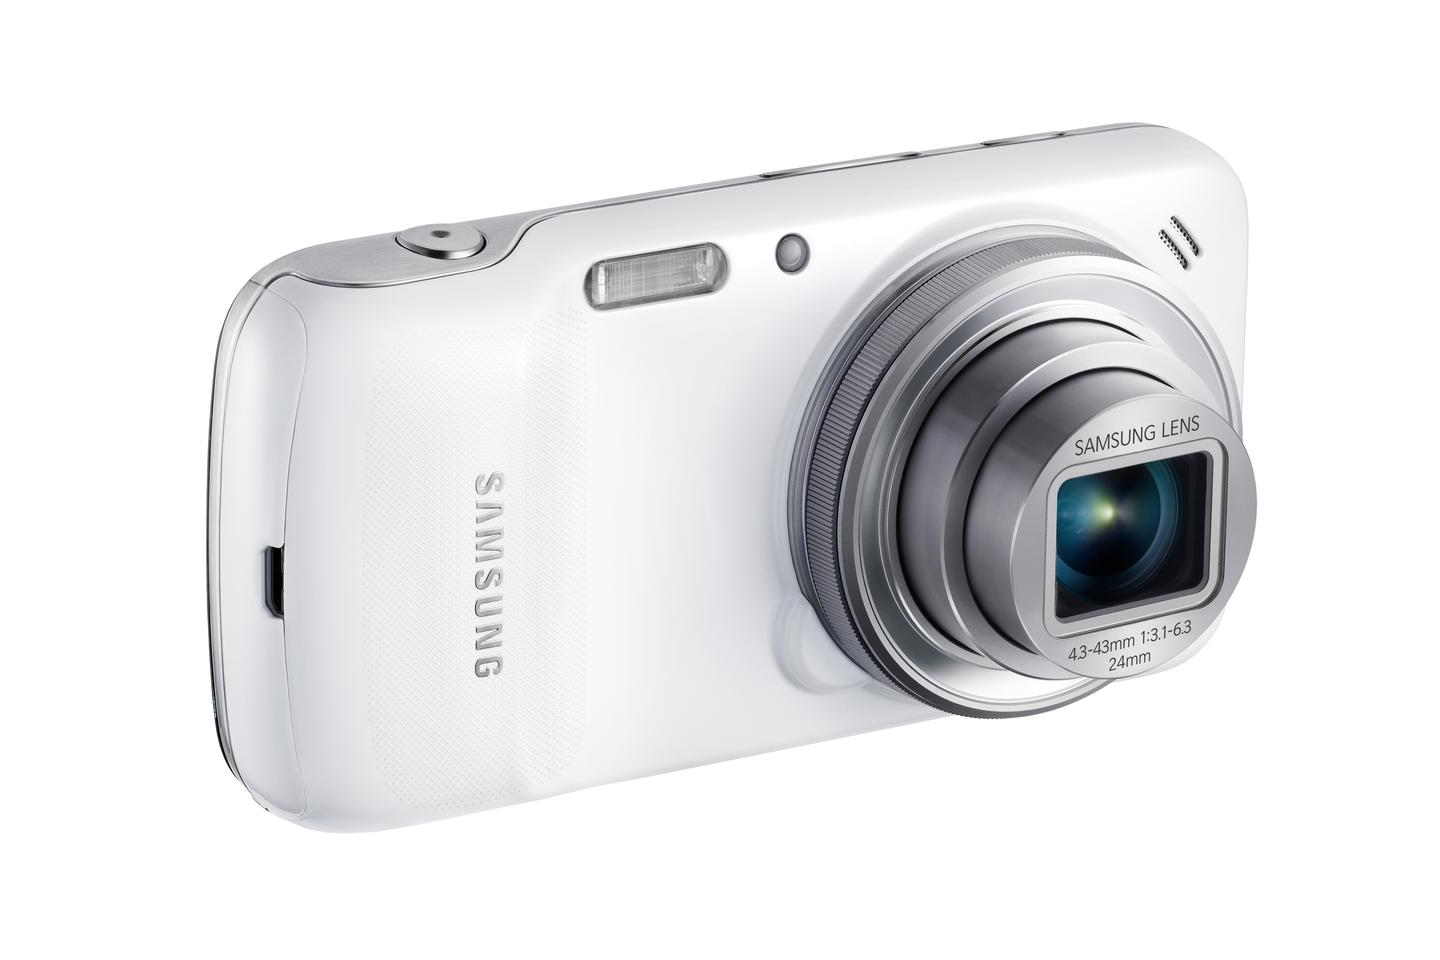 Samsung's Galaxy S4 zoom cameraphone